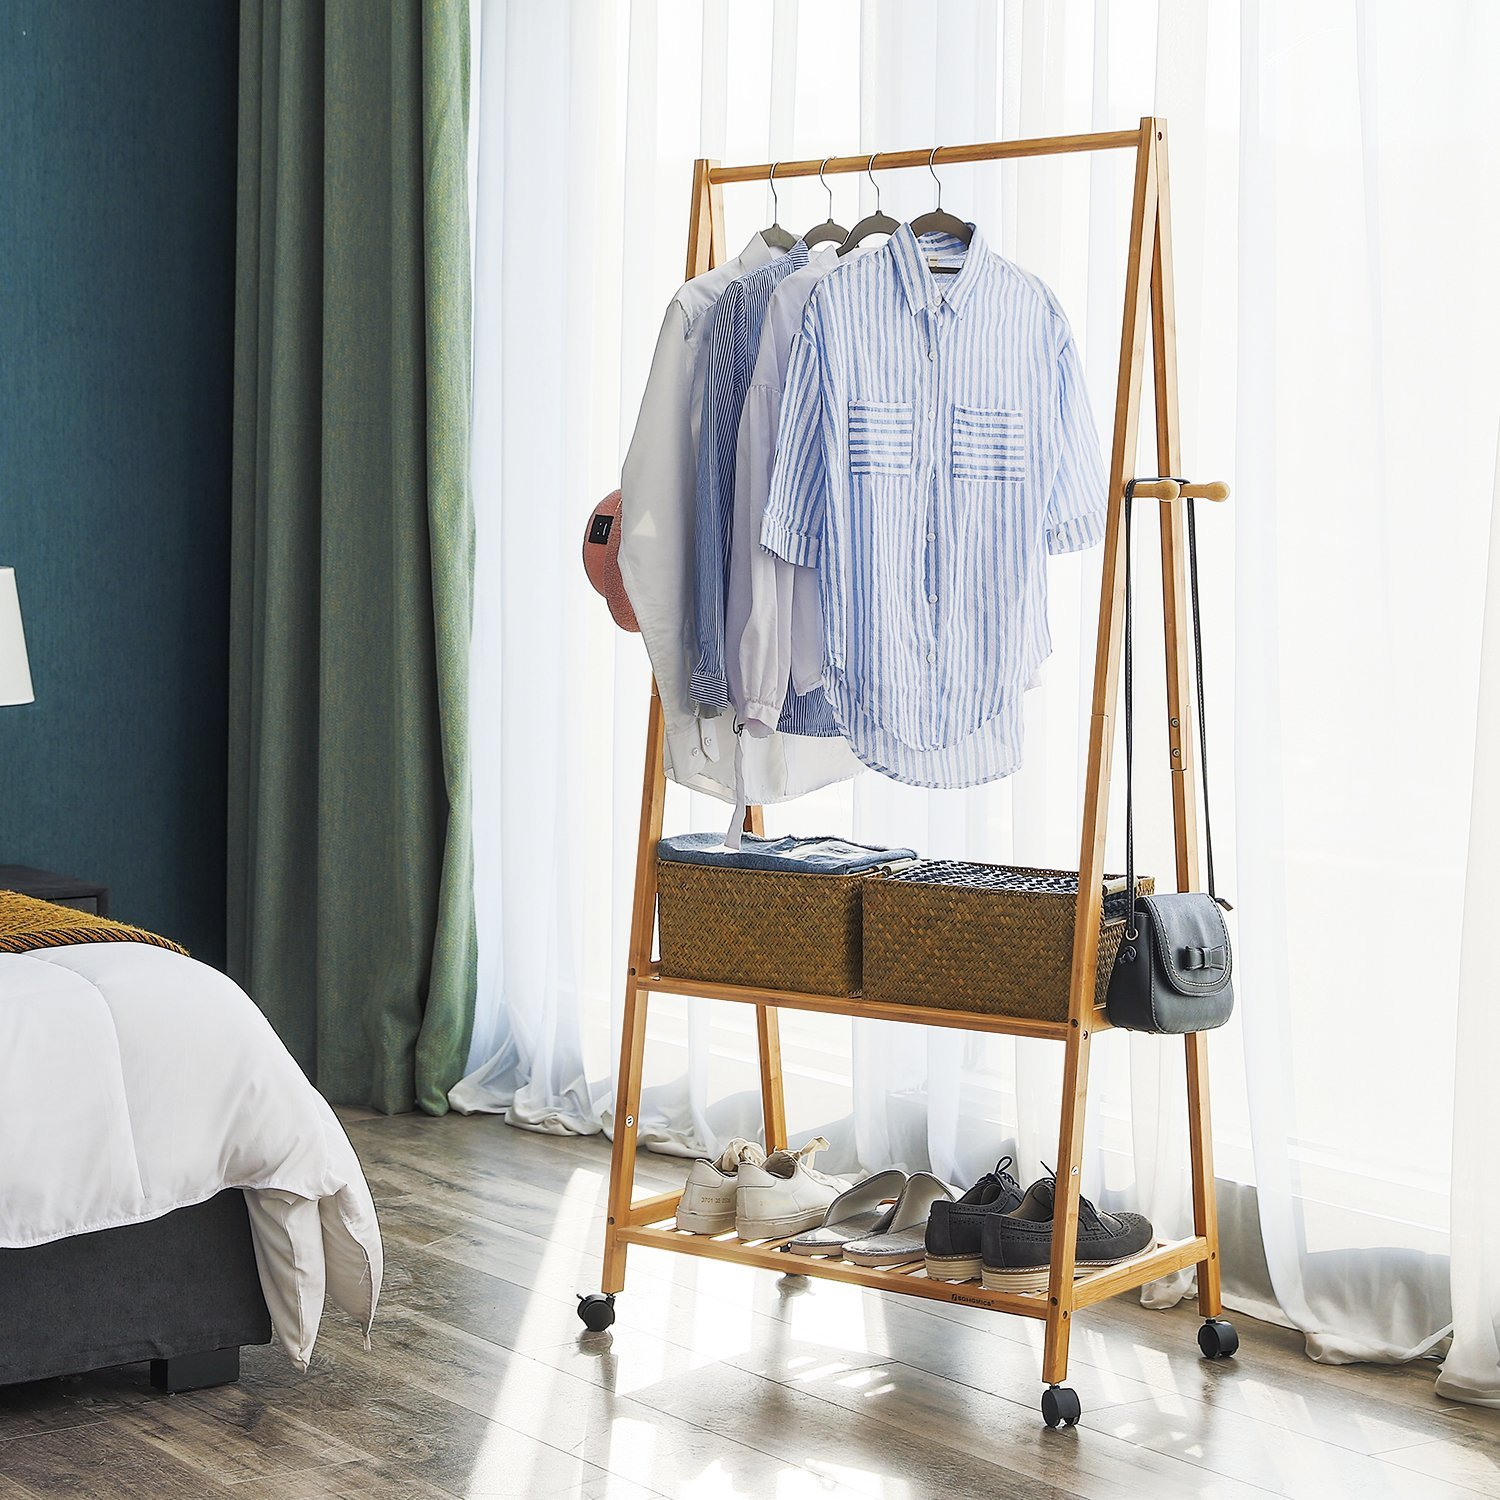 Laundry 101 A Simple 3 Step Guide Classy Yet Trendy